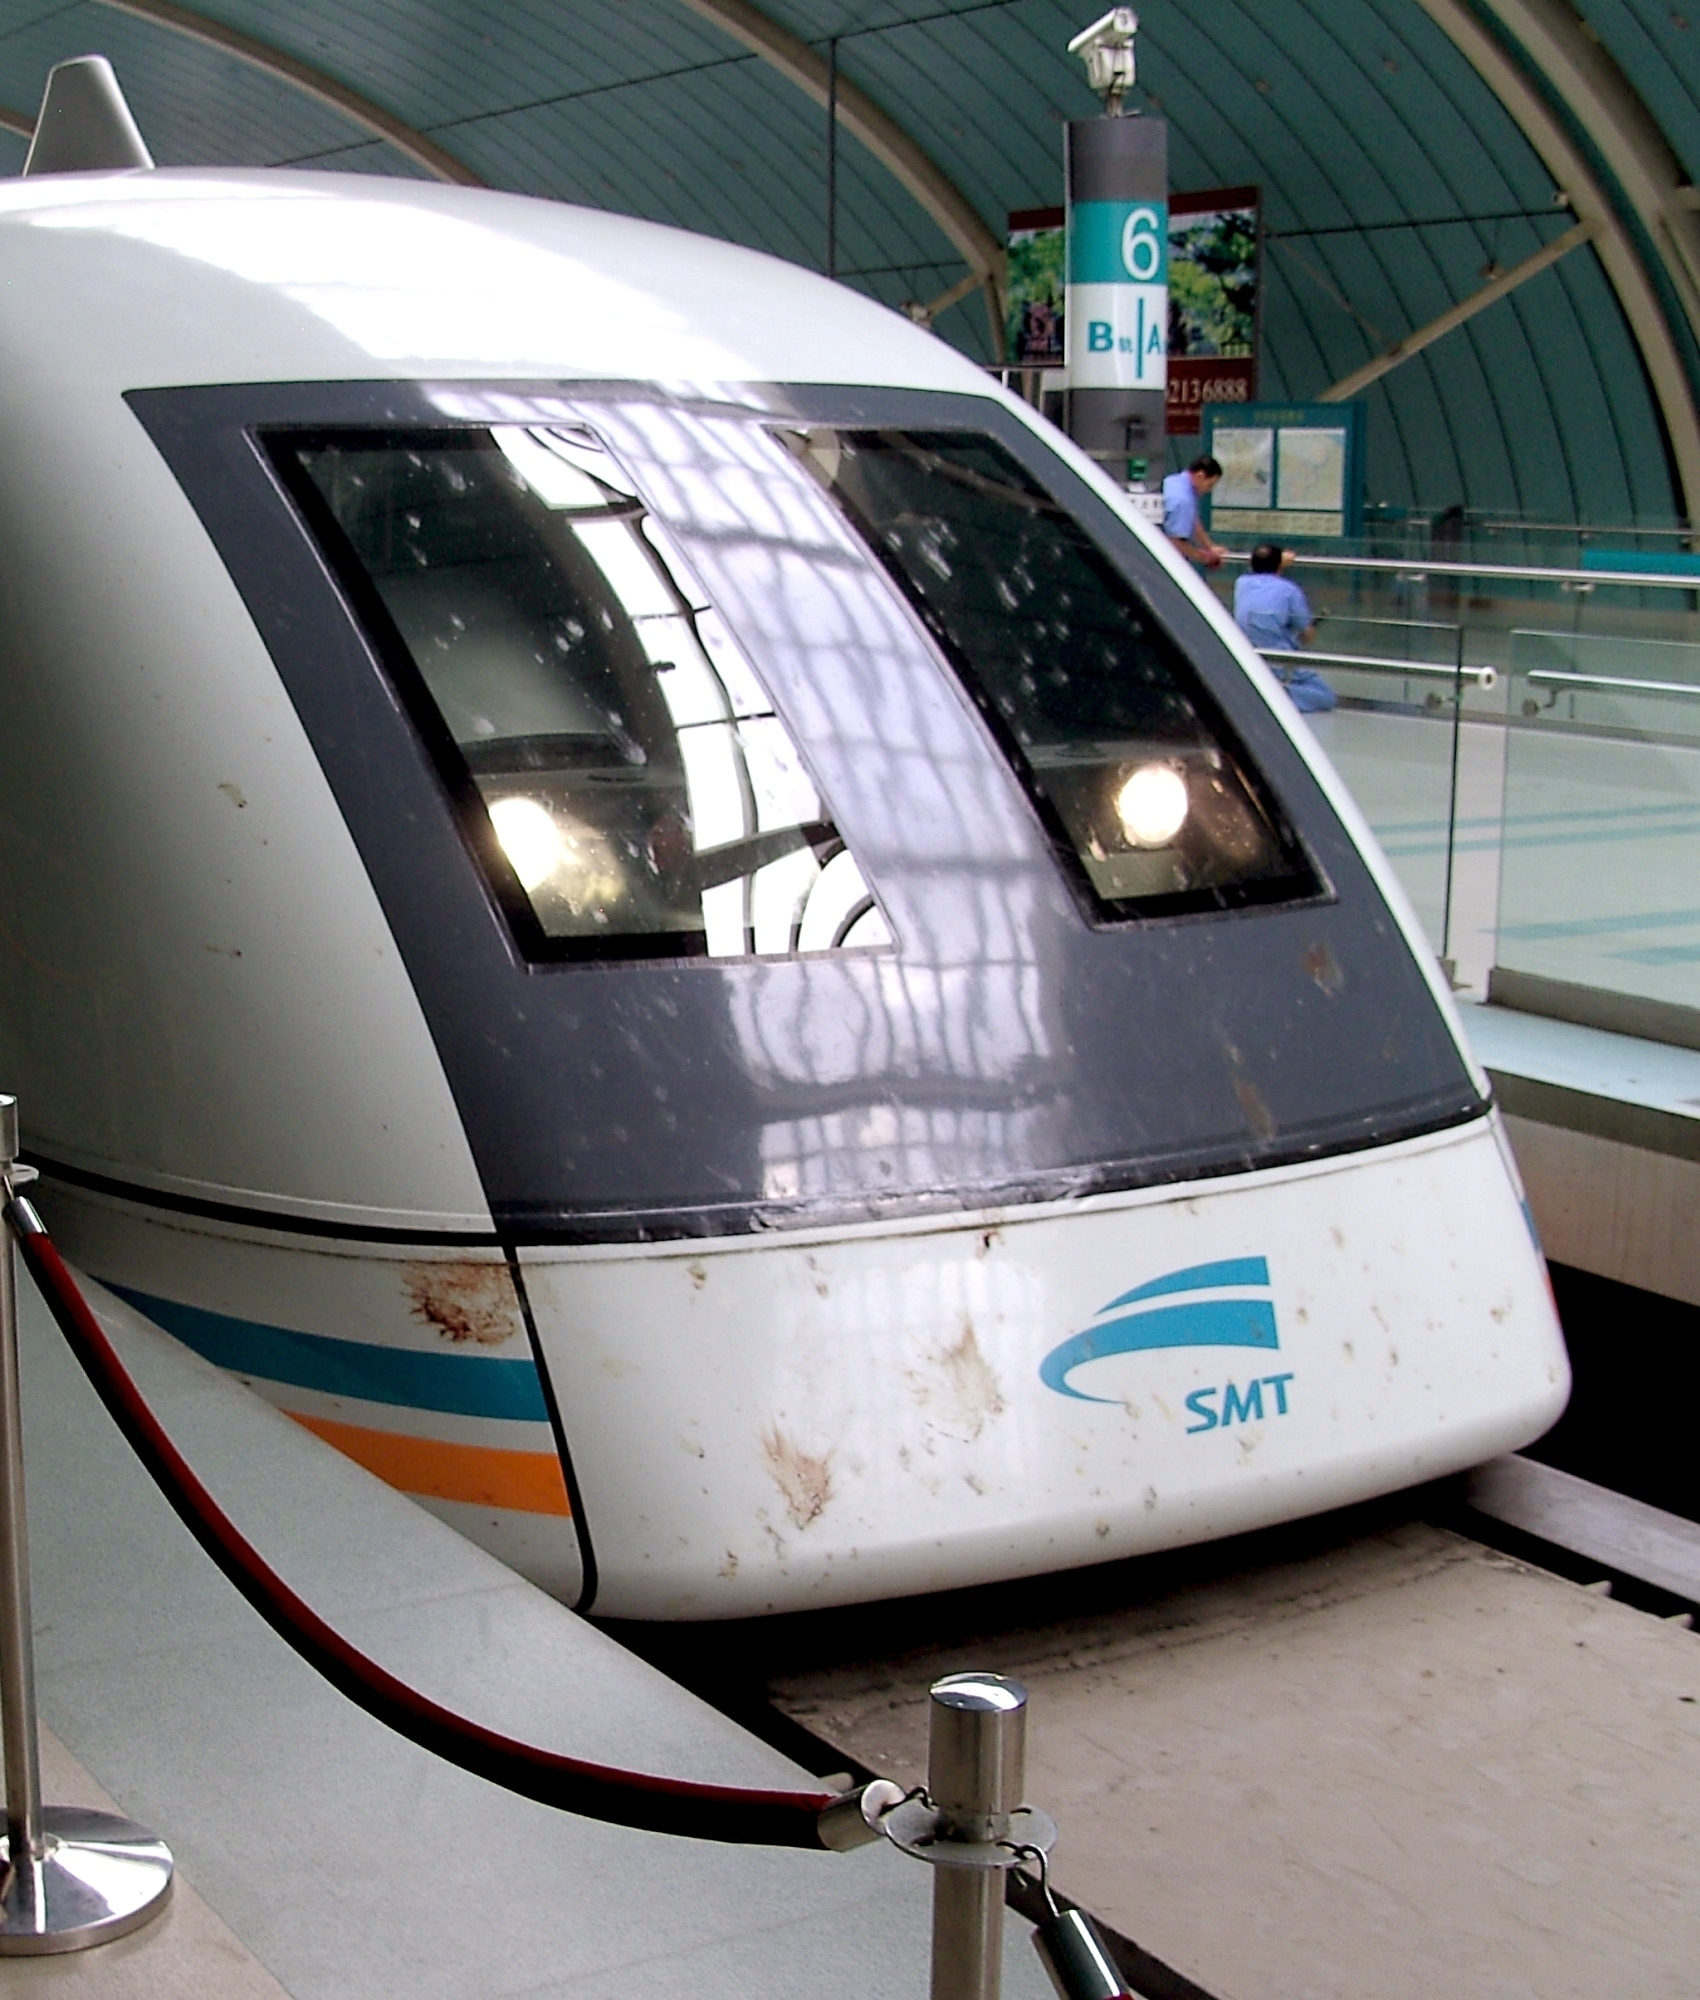 File:Shanghai Maglev Train, right front view.JPG ...